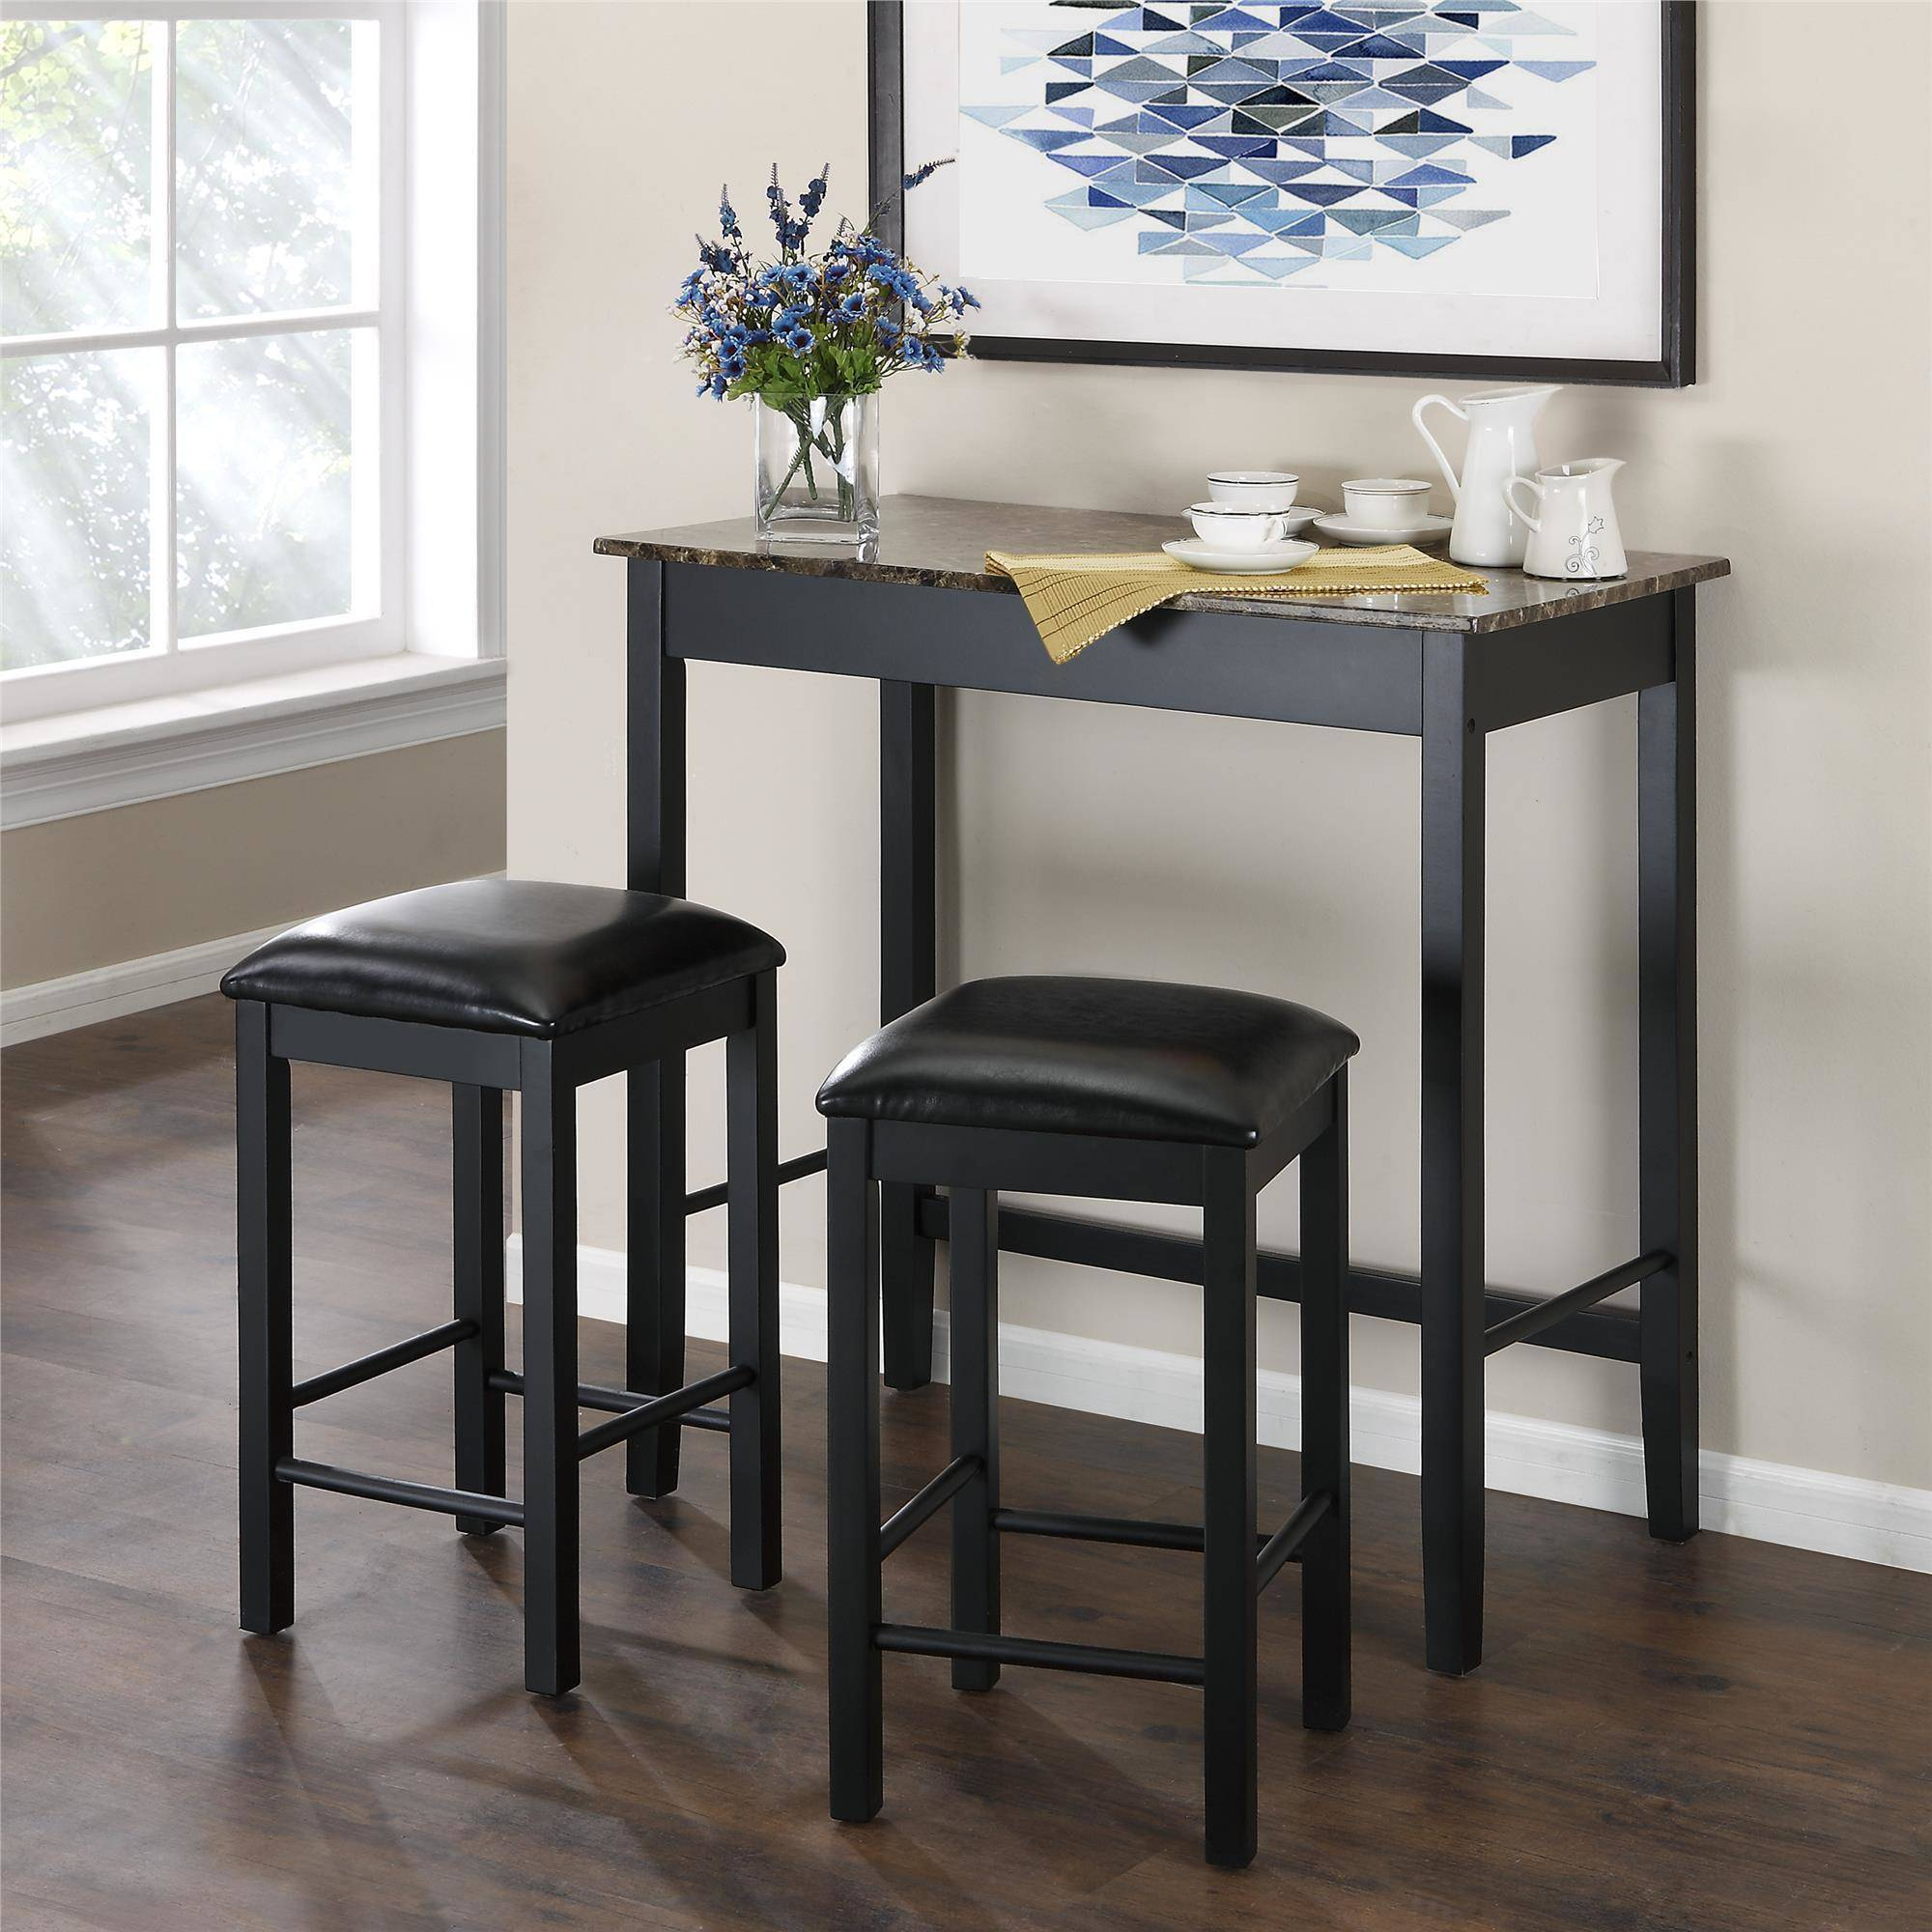 Best chairs for dining room table kitchen u0026 dining furniture - walmart.com vspkibc